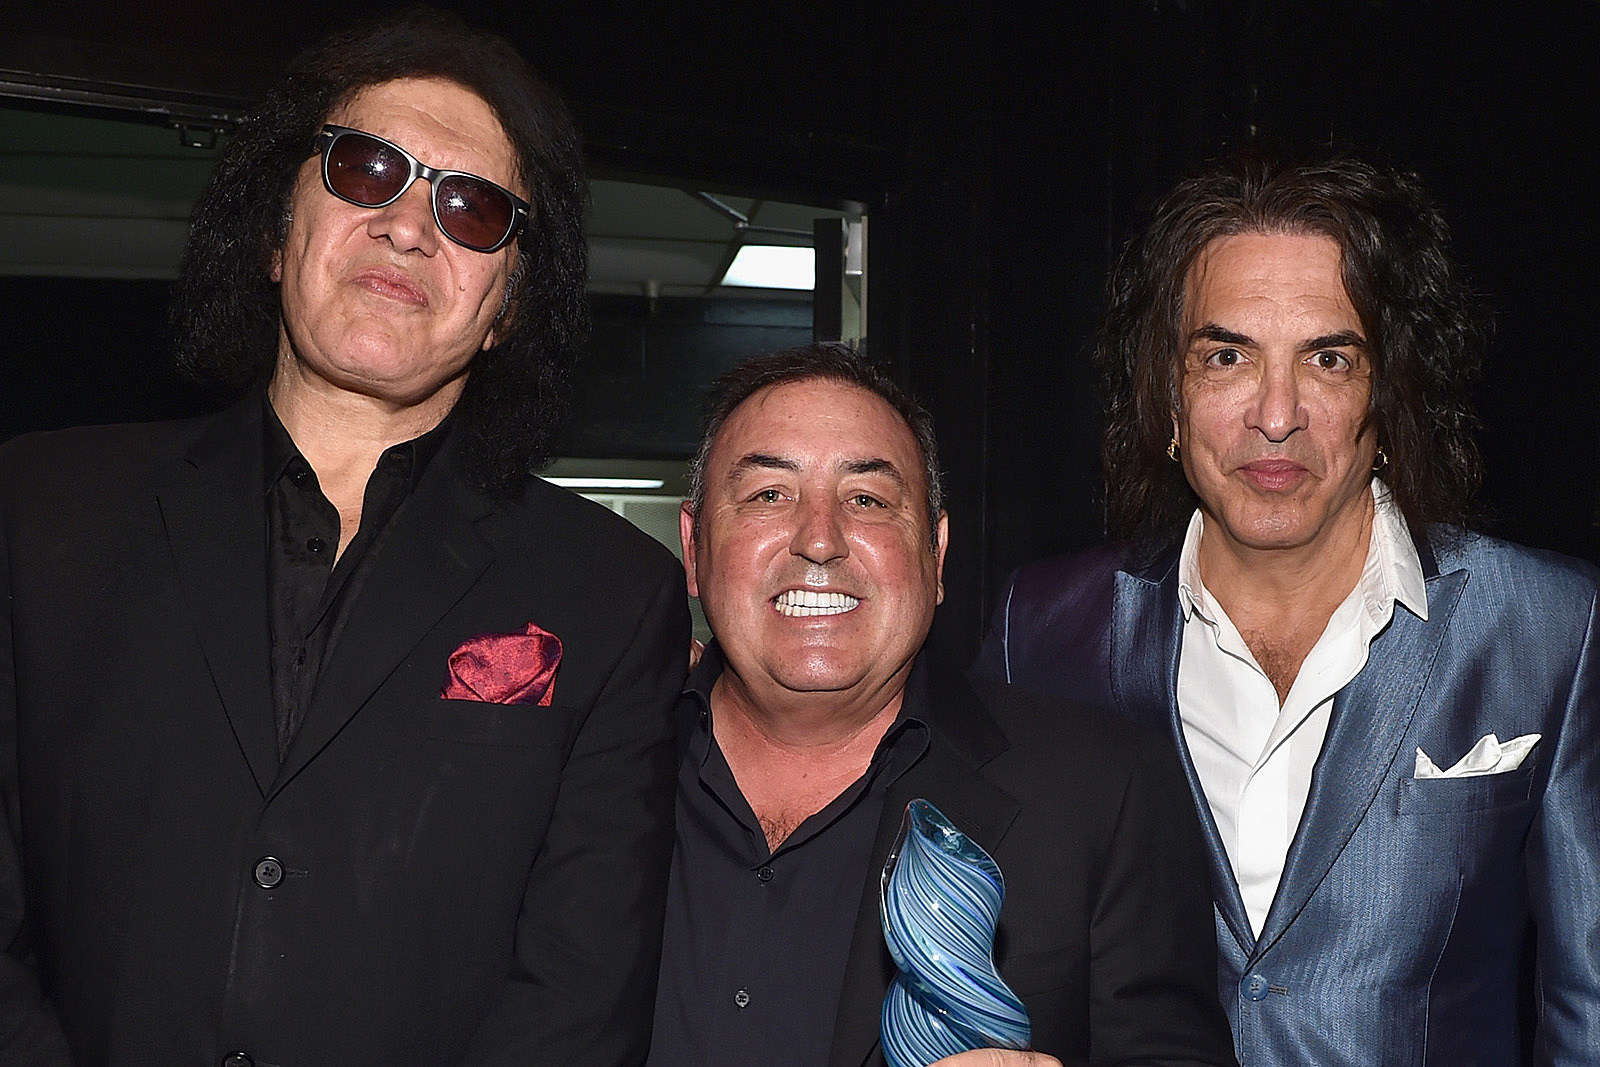 Doc McGhee Told Kiss: 'Call Me When You Put the Makeup Back On'